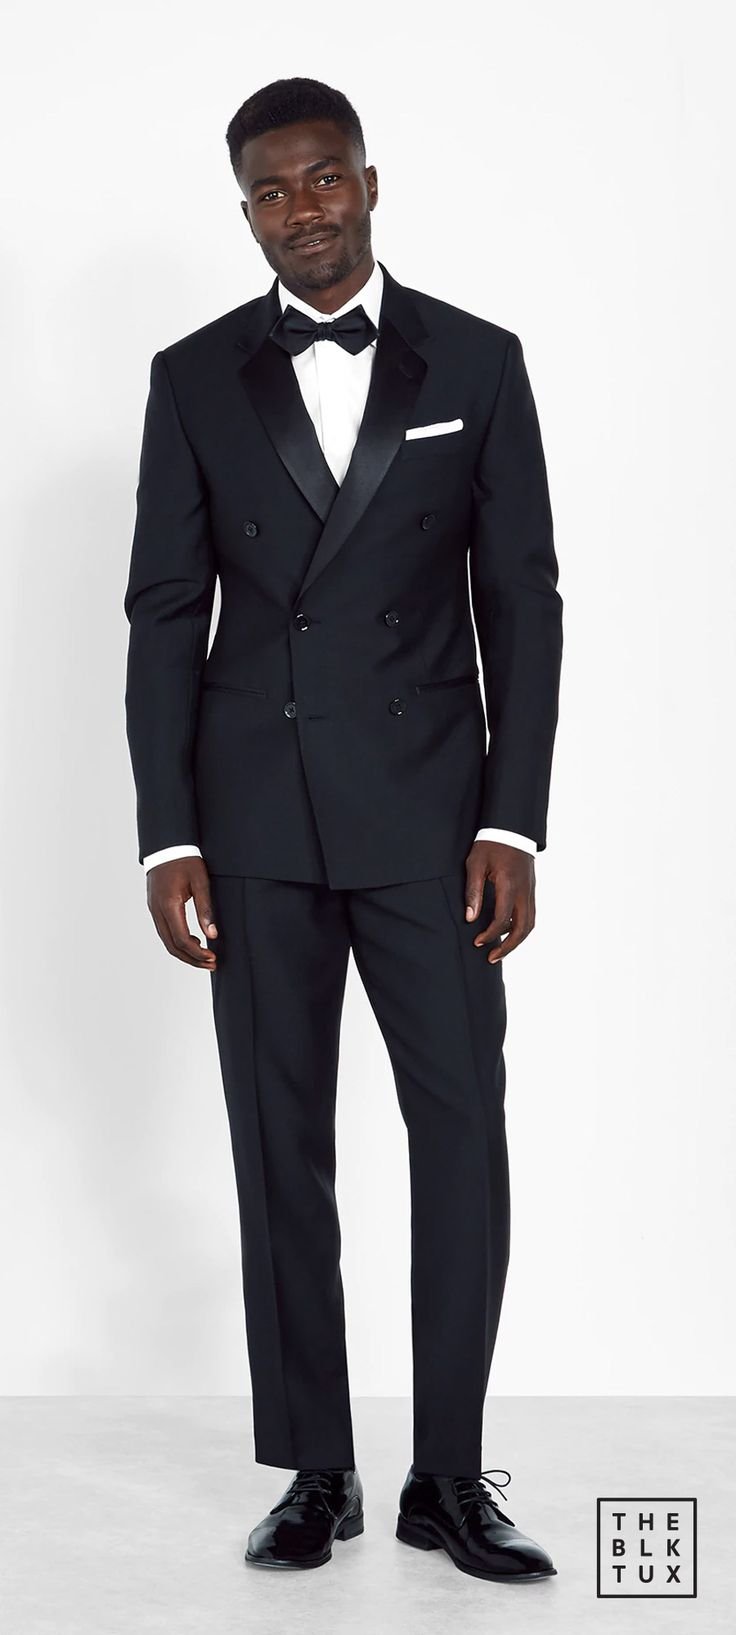 the black tux 2017 online tuxedos rental service double breasted tuxedo groommen best man style -- Suit Up in Style, The Black Tux Way